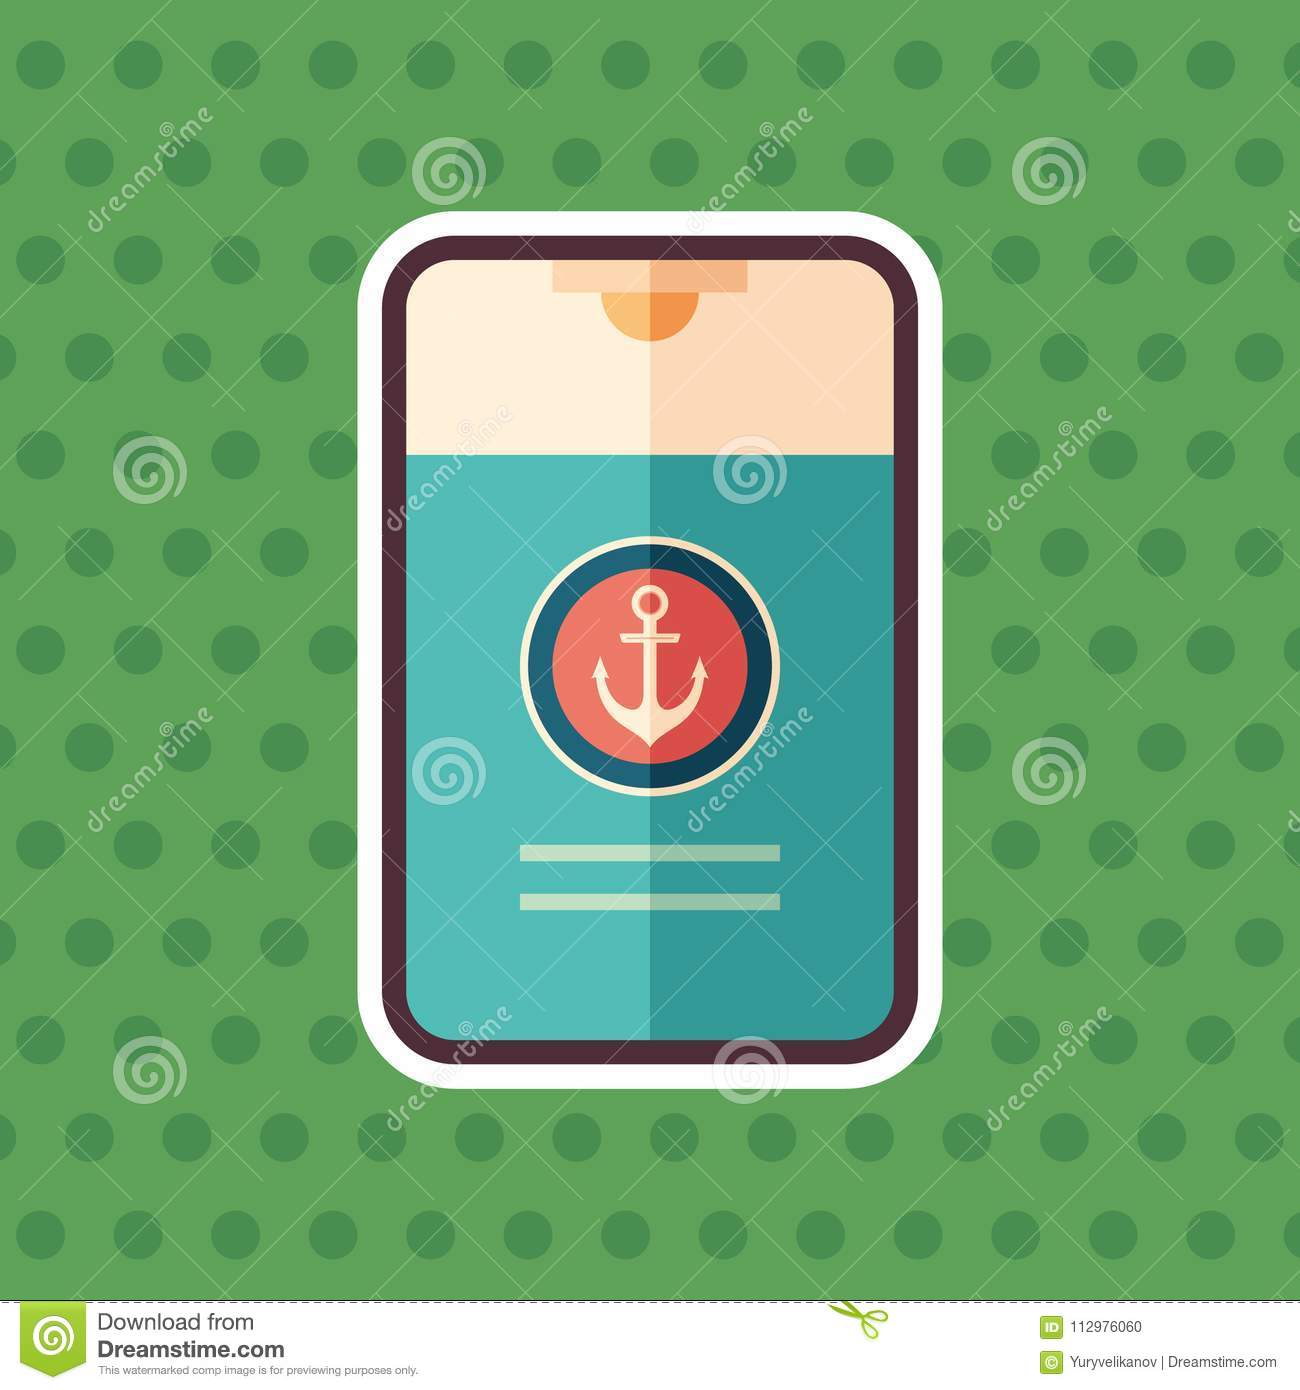 Marine shower gel sticker flat icon with color background.